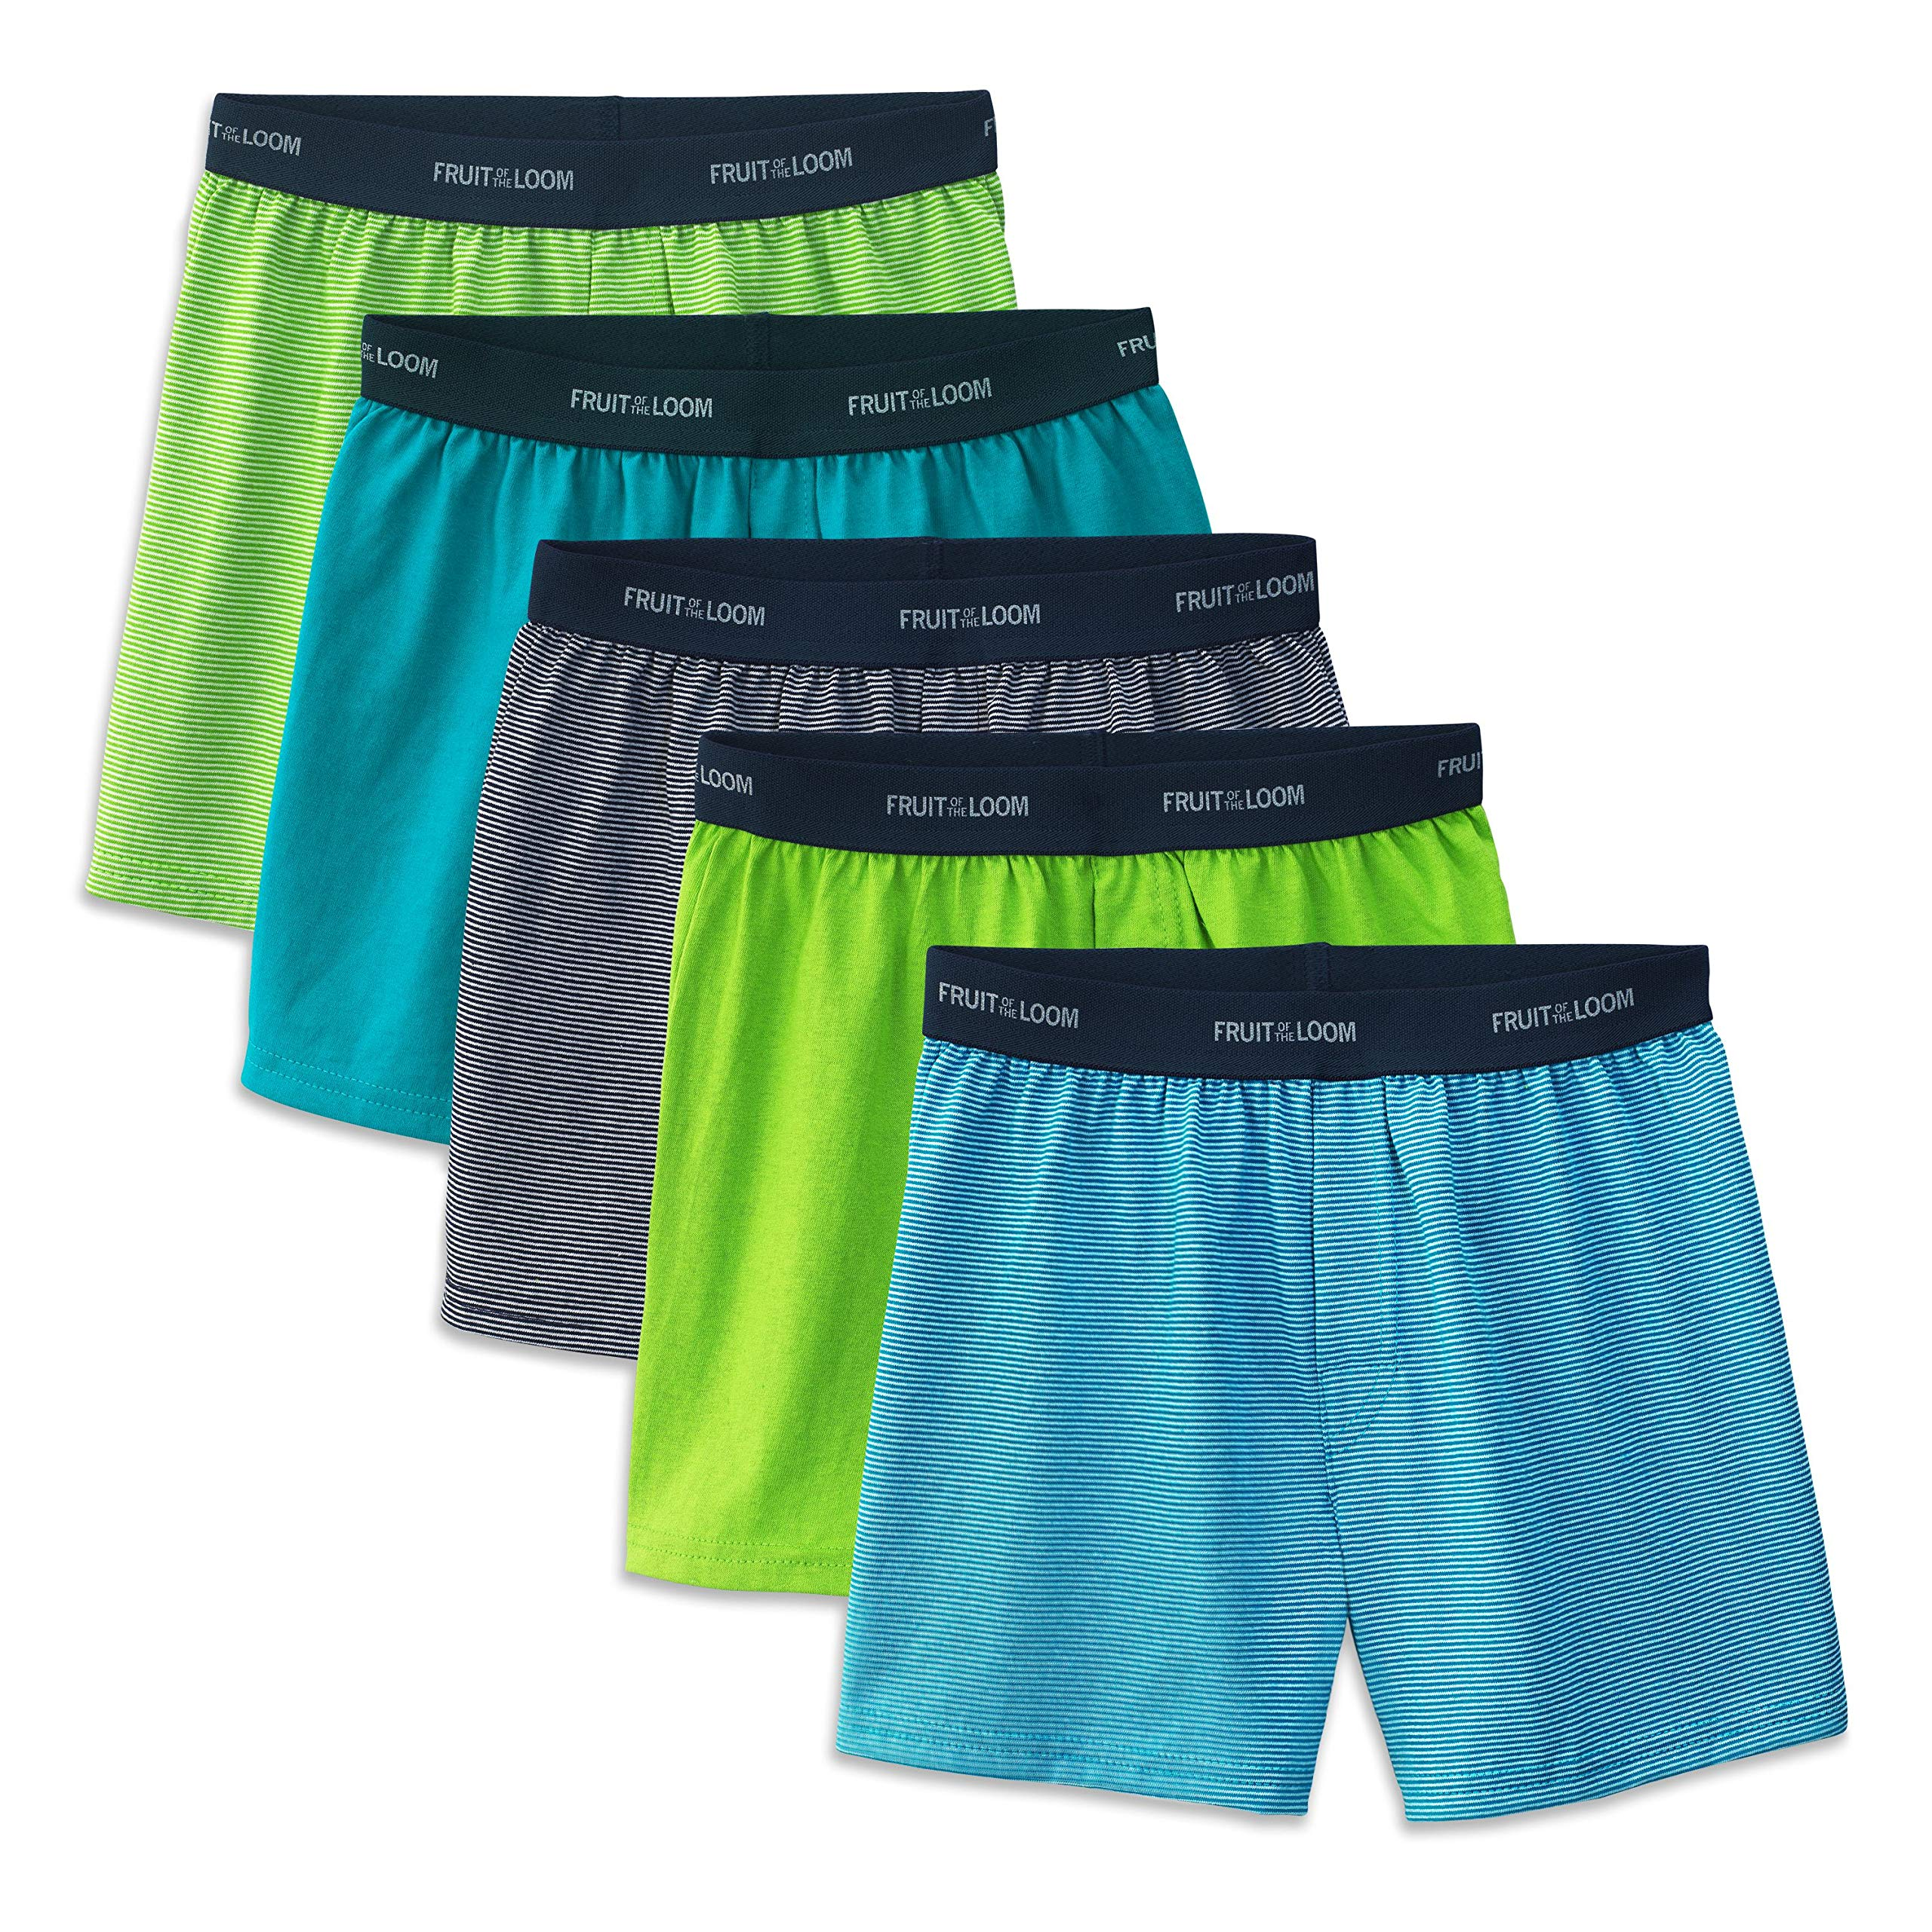 Fruit of the Loom Boys' Big 5 Pack Knit Boxer, Assorted, L by Fruit of the Loom